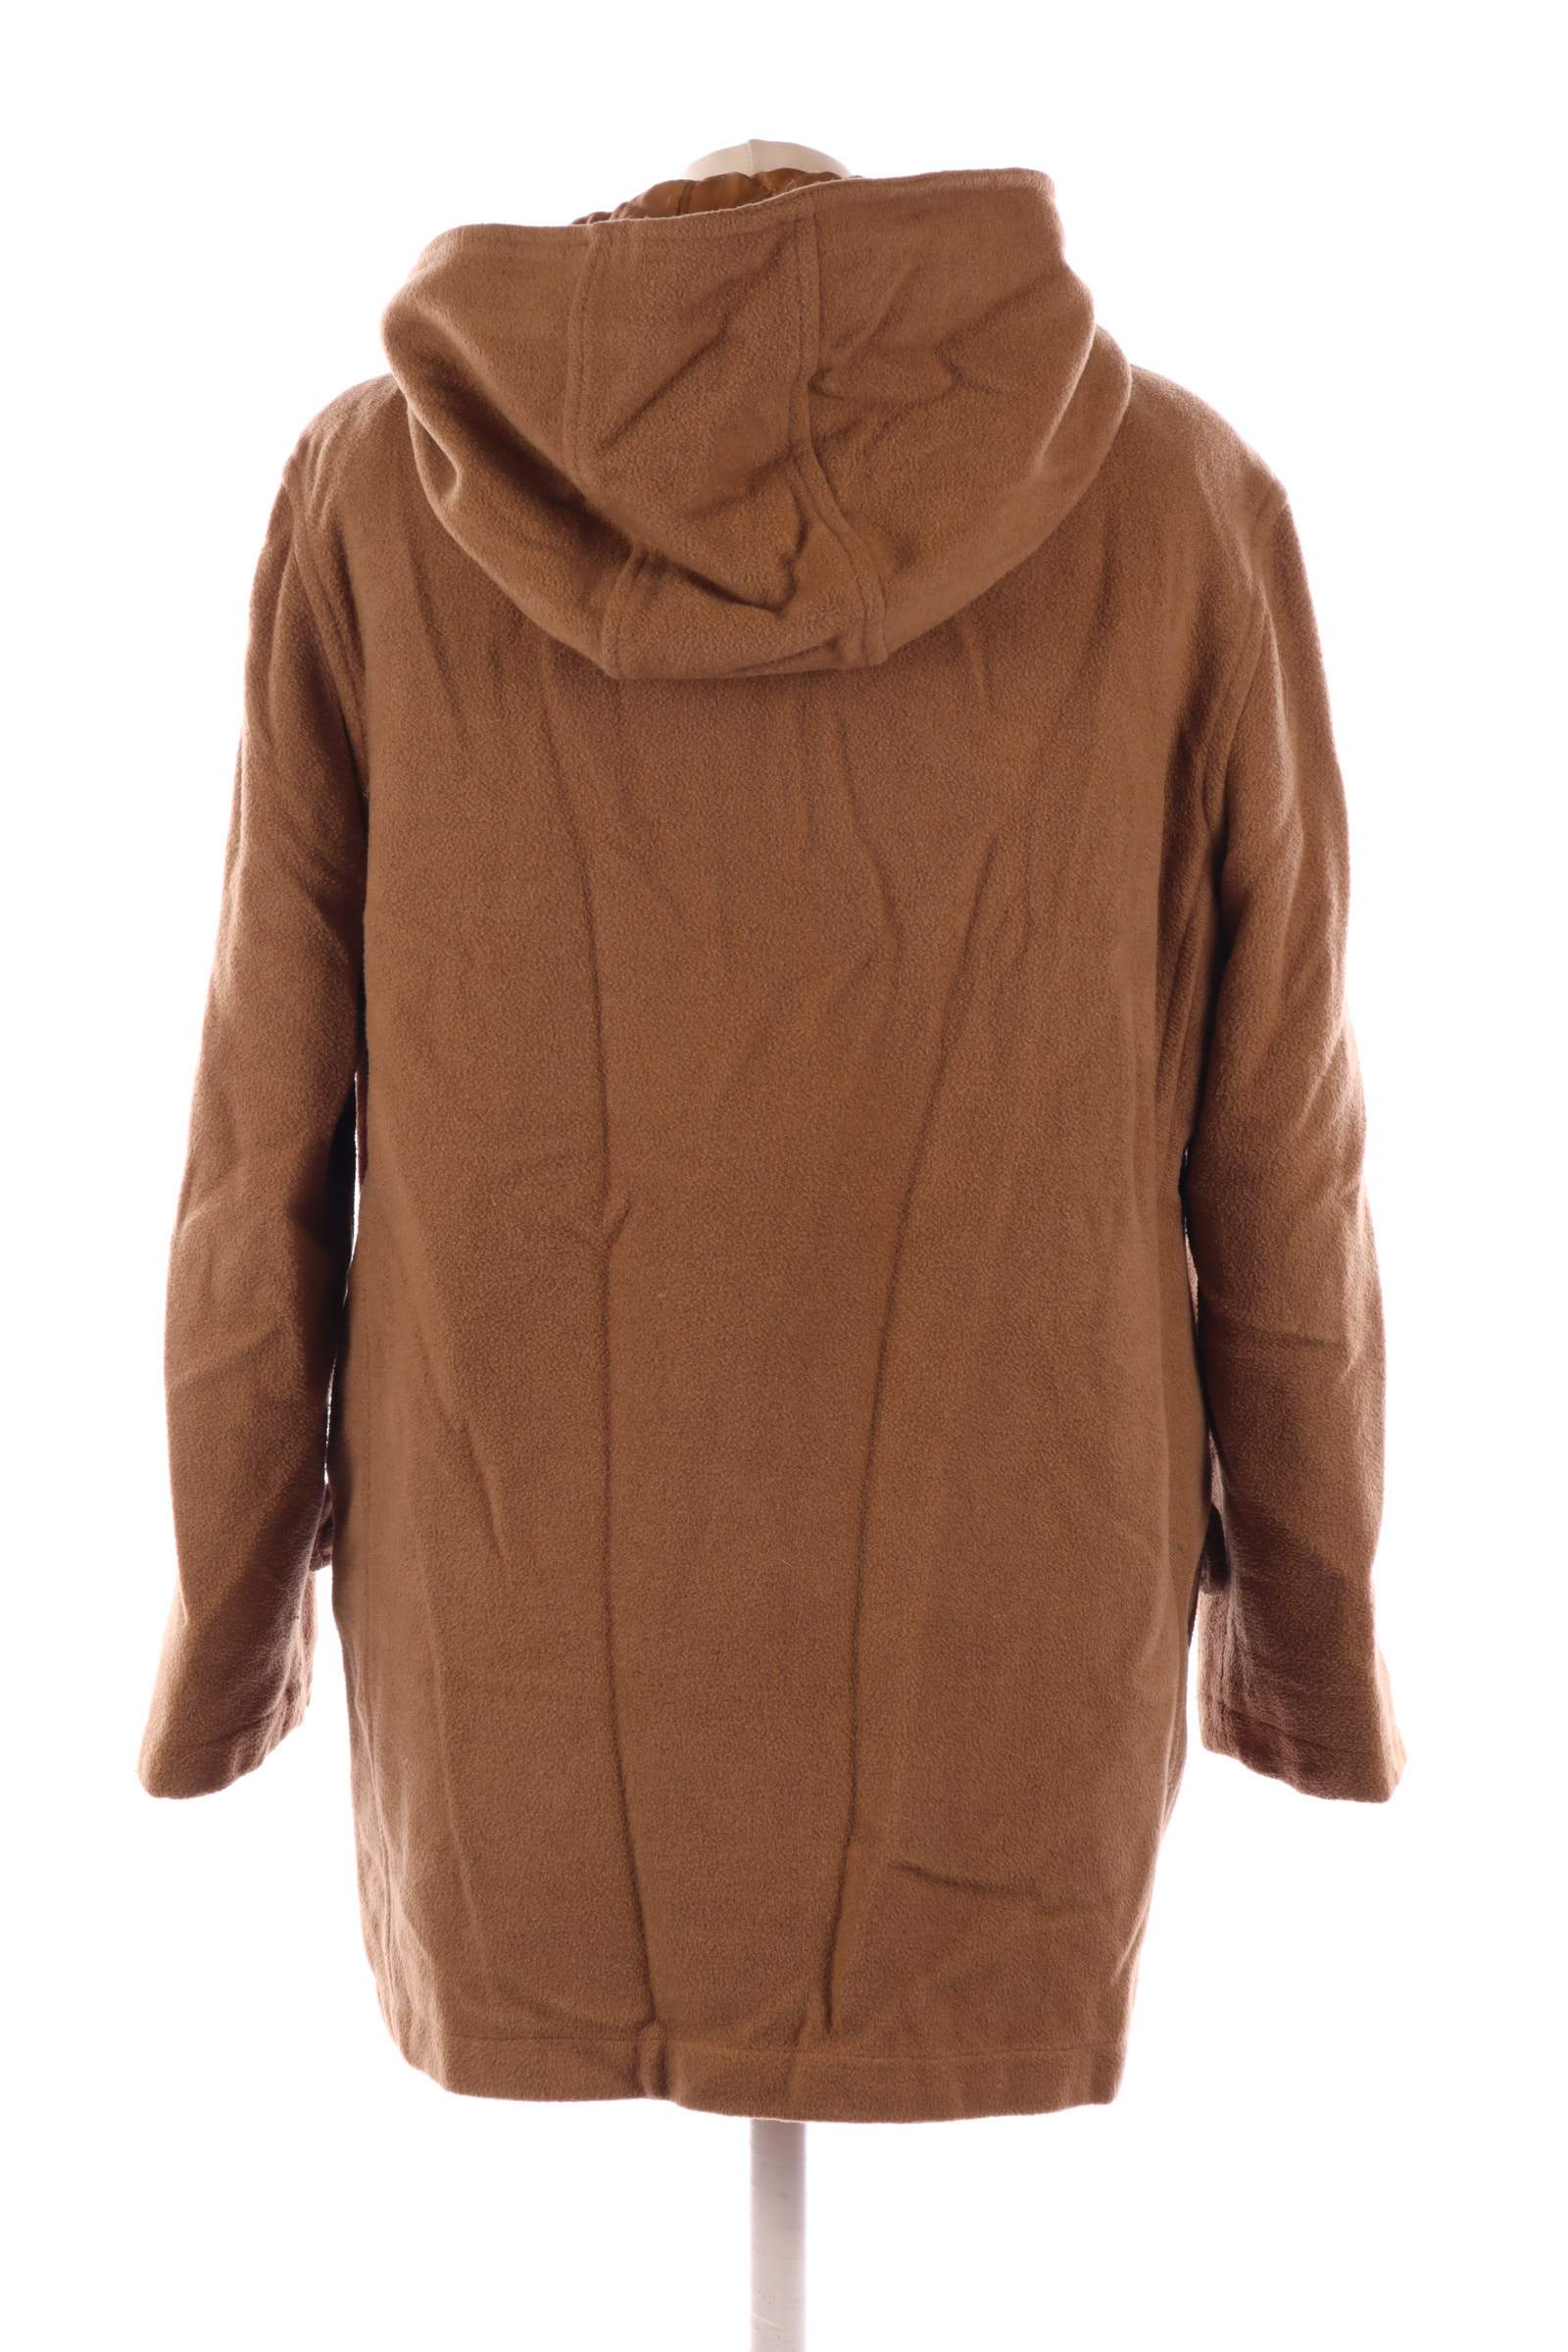 Chico's Brown Coat - upty.store